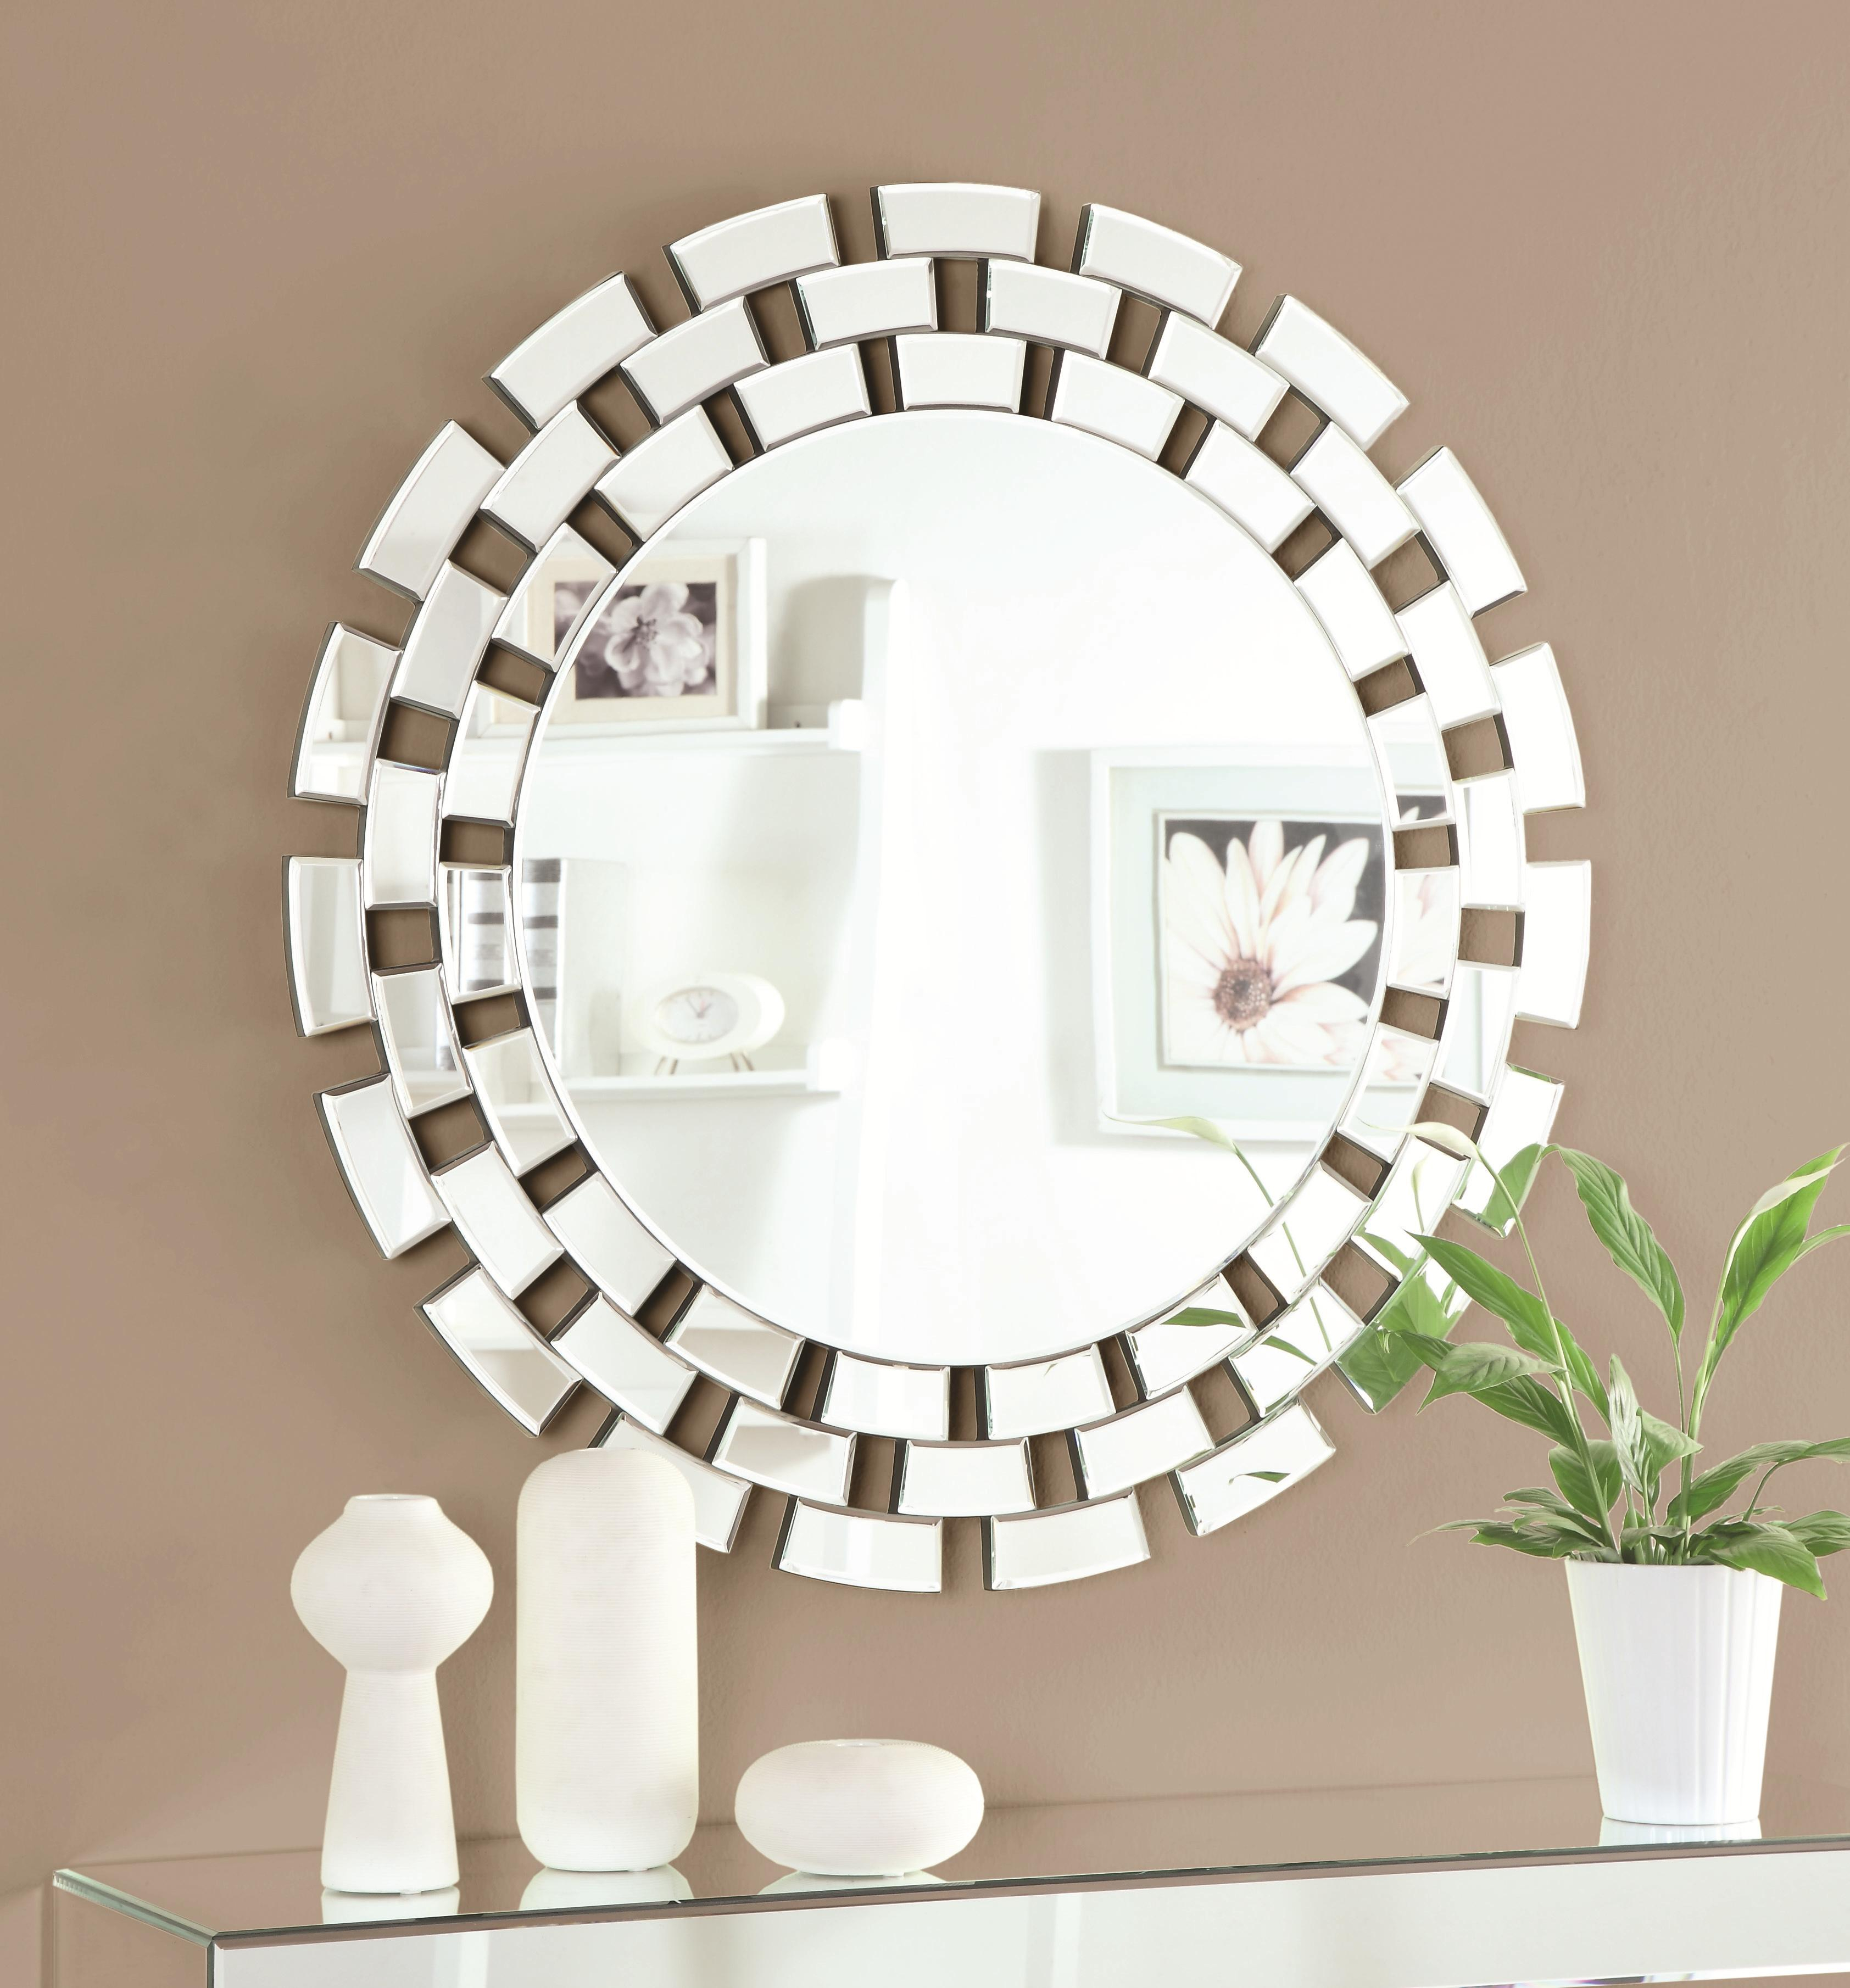 Accent Mirrors Round Wall Mirror With Geometric Frame With Regard To Grid Accent Mirrors (Image 1 of 20)